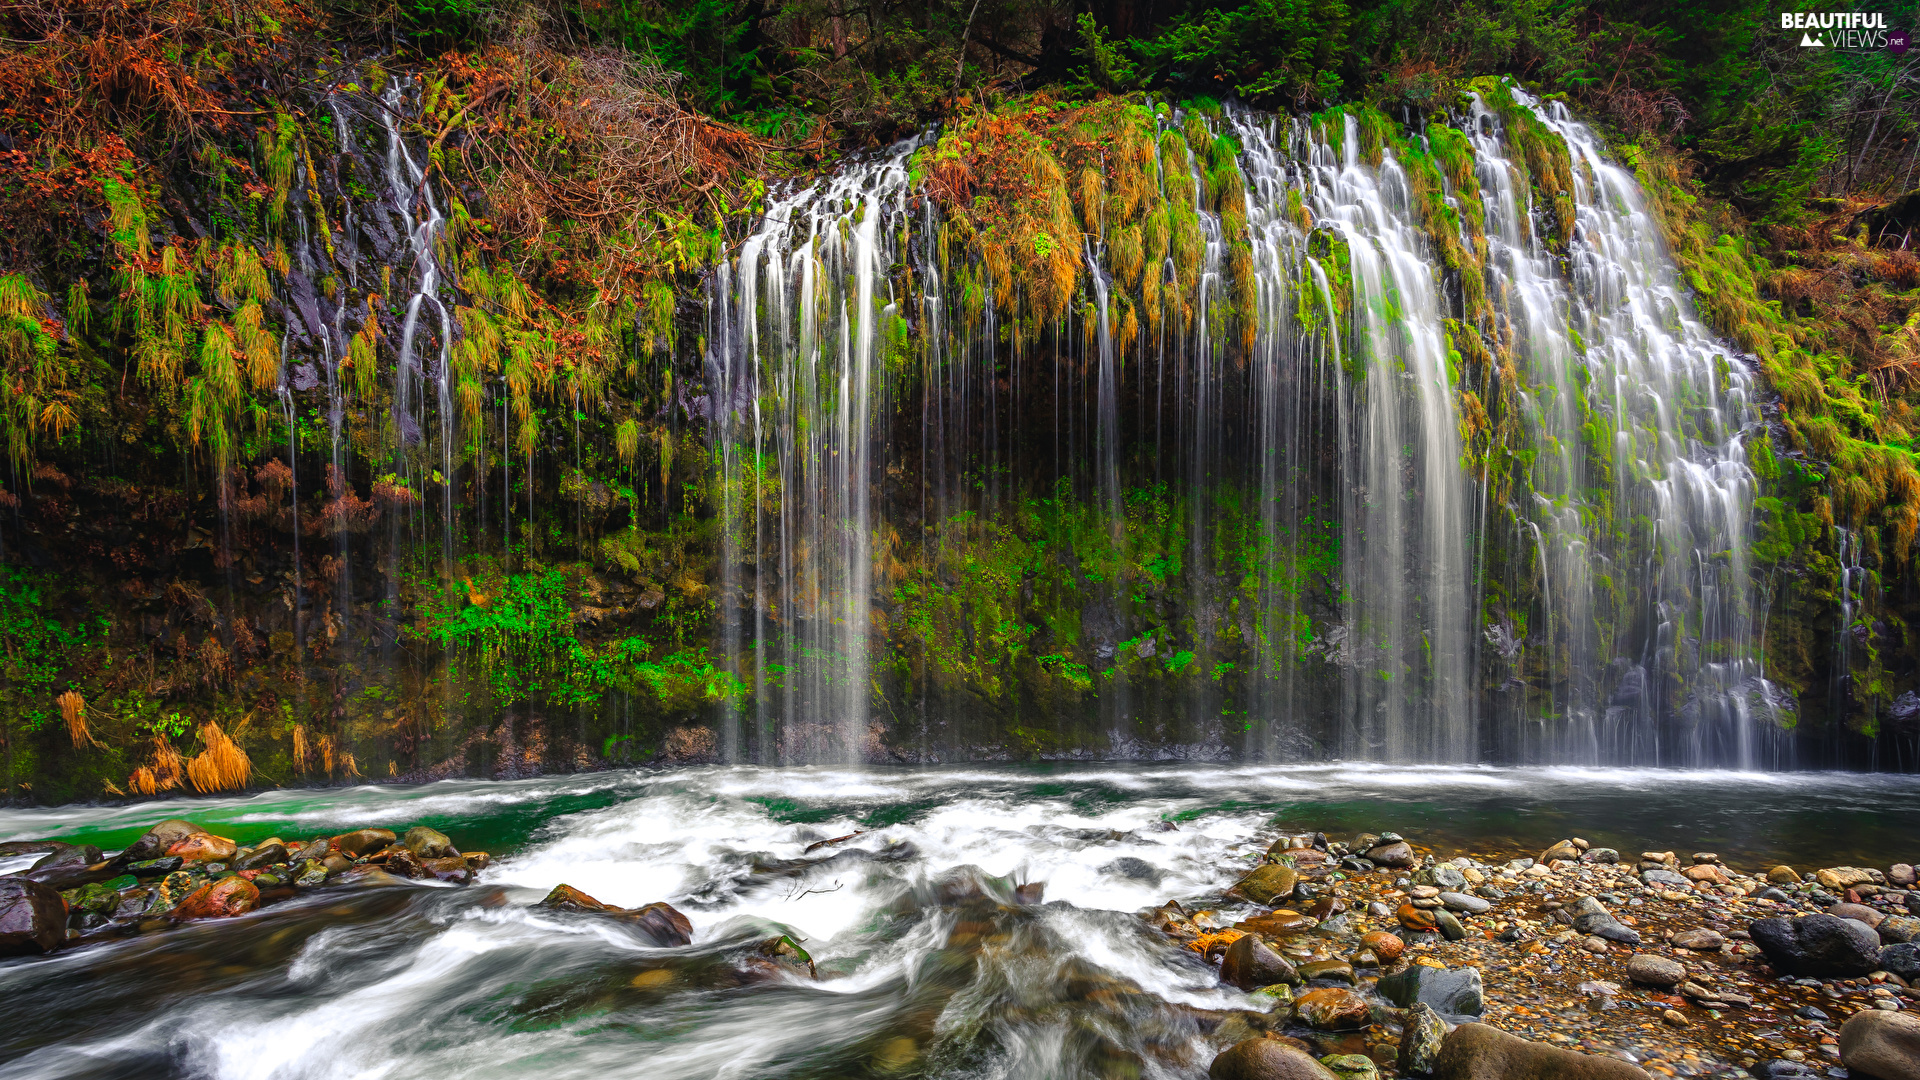 Mossbrae Falls, State of California, The United States, Stones